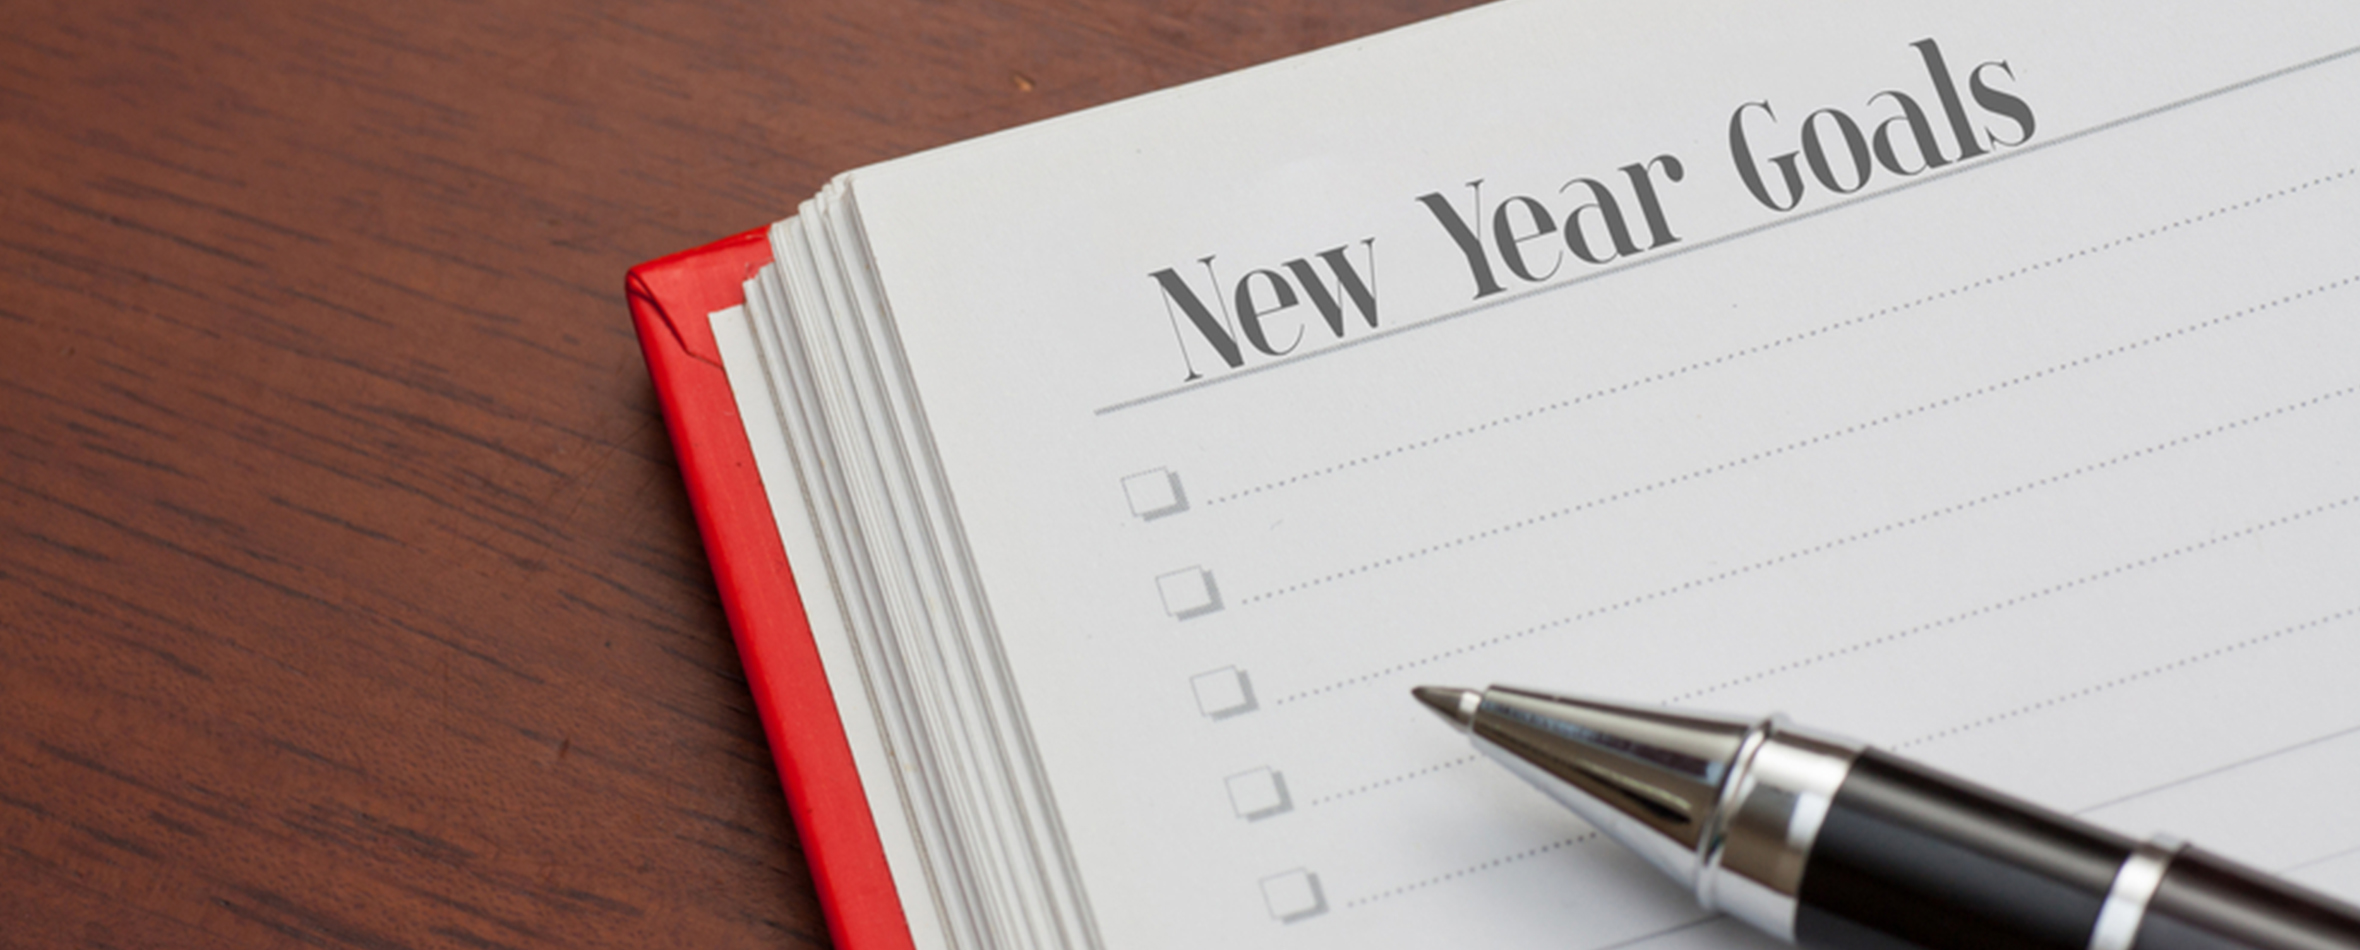 New Year's Resolutions blog header image